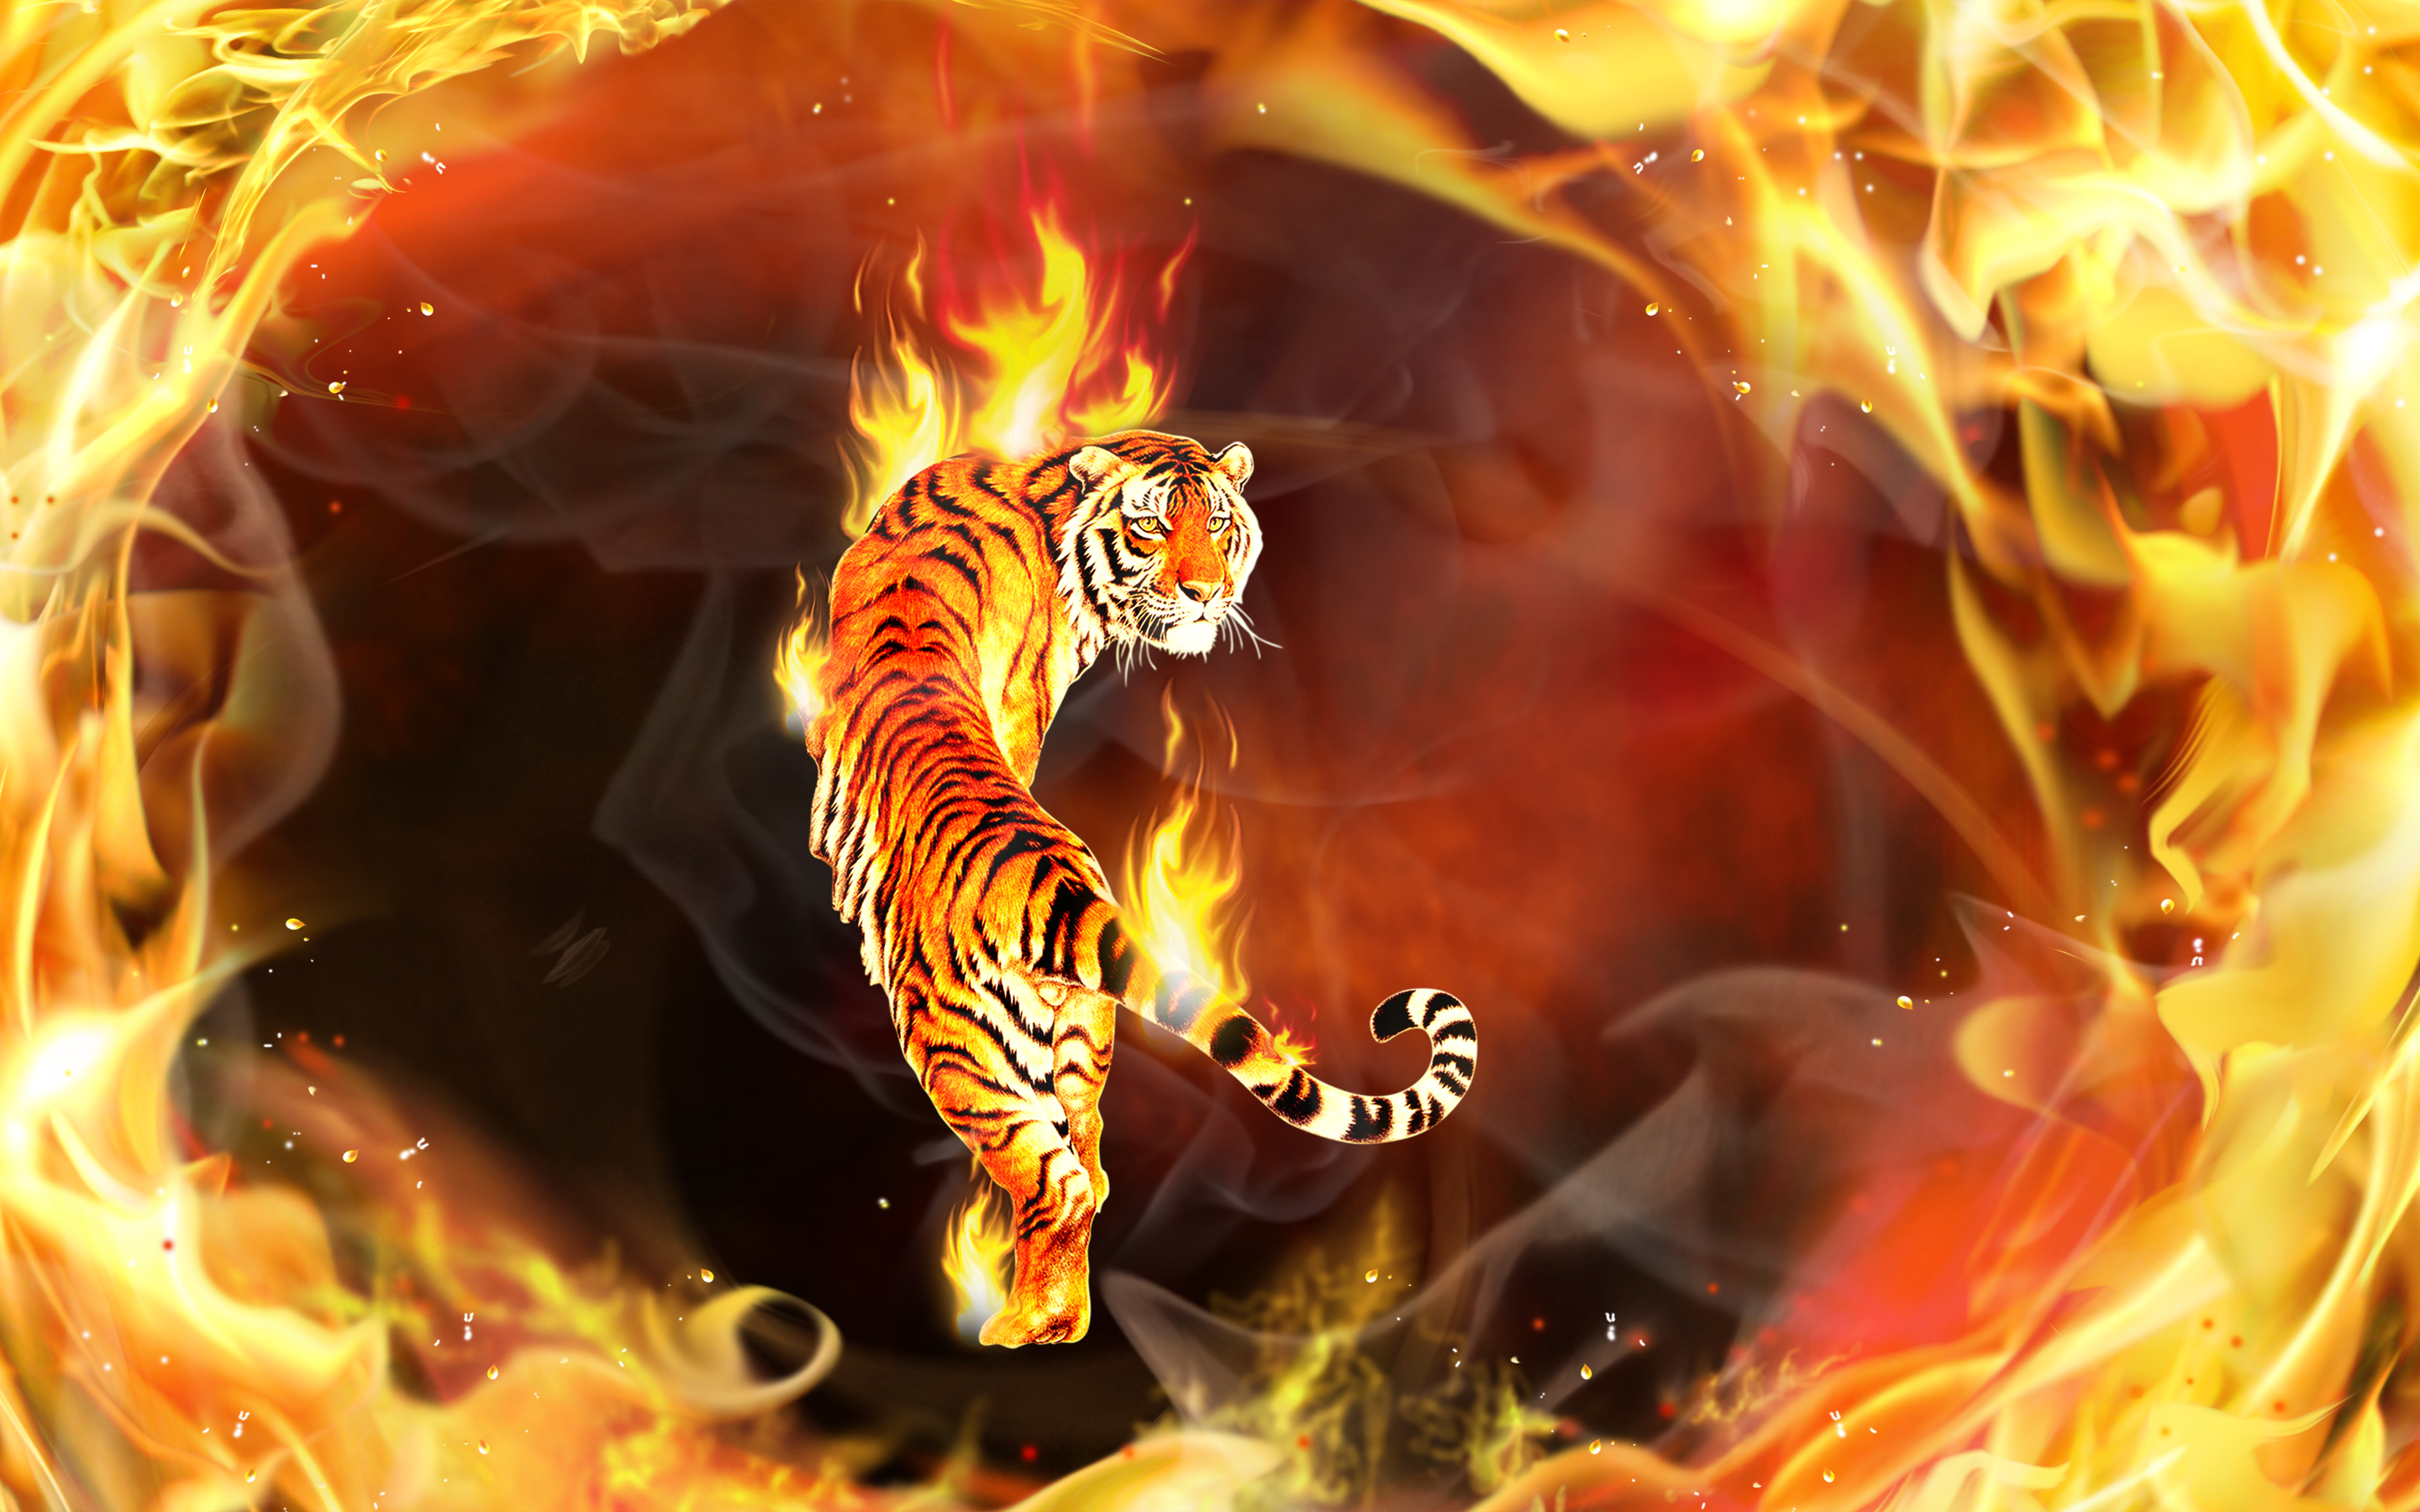 Charming Fantasy   Tiger CGI Digital Art 3D Psychedelic Fire Flame Abstract Wallpaper